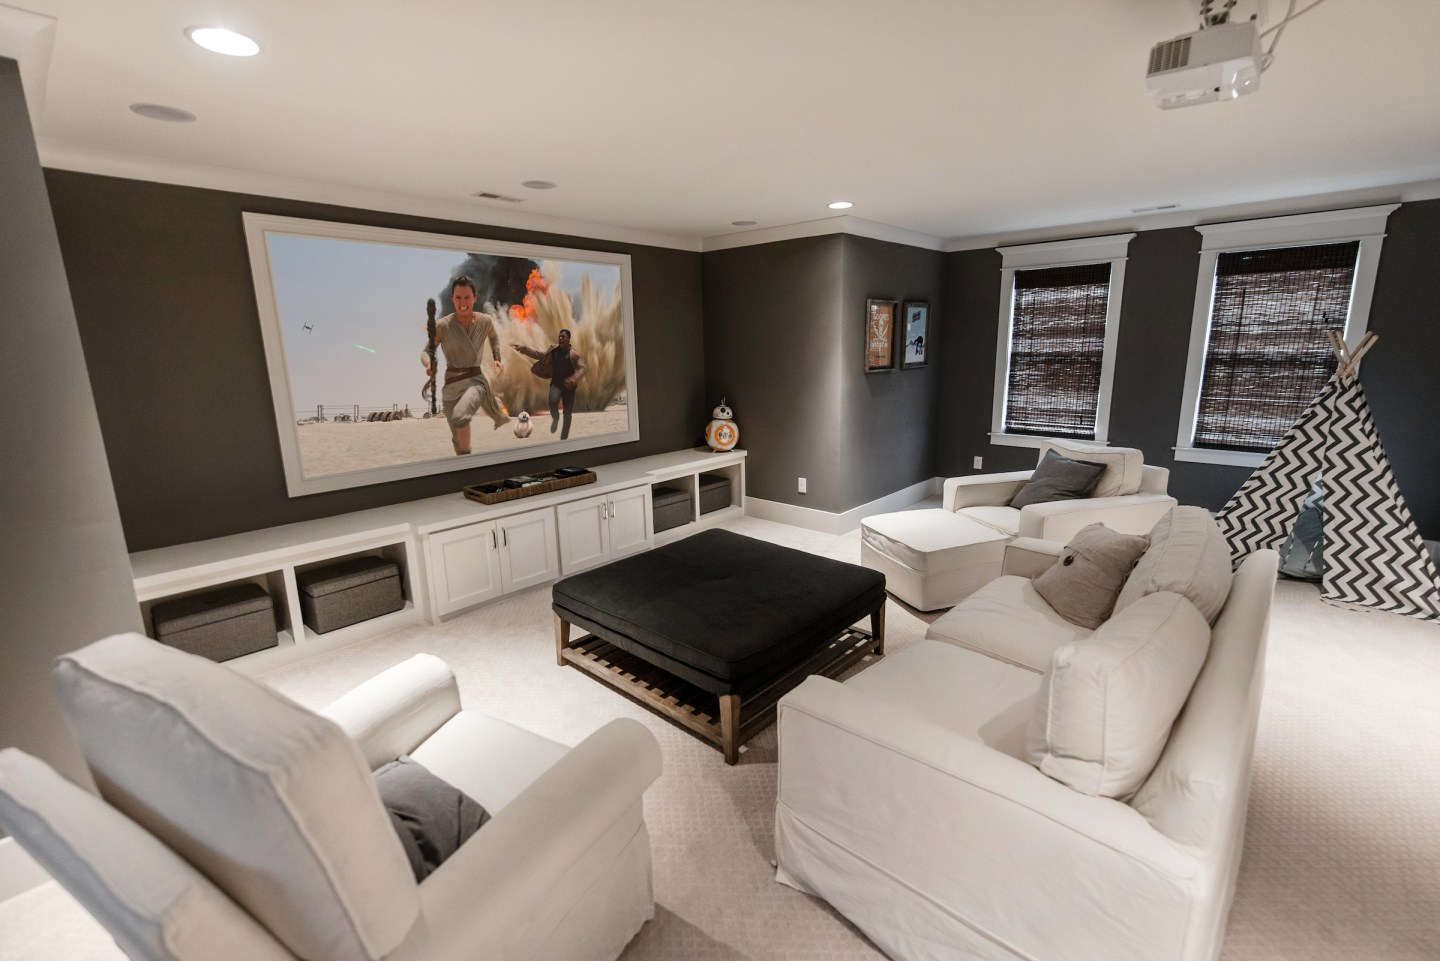 home-theater-room-with-projector-screen